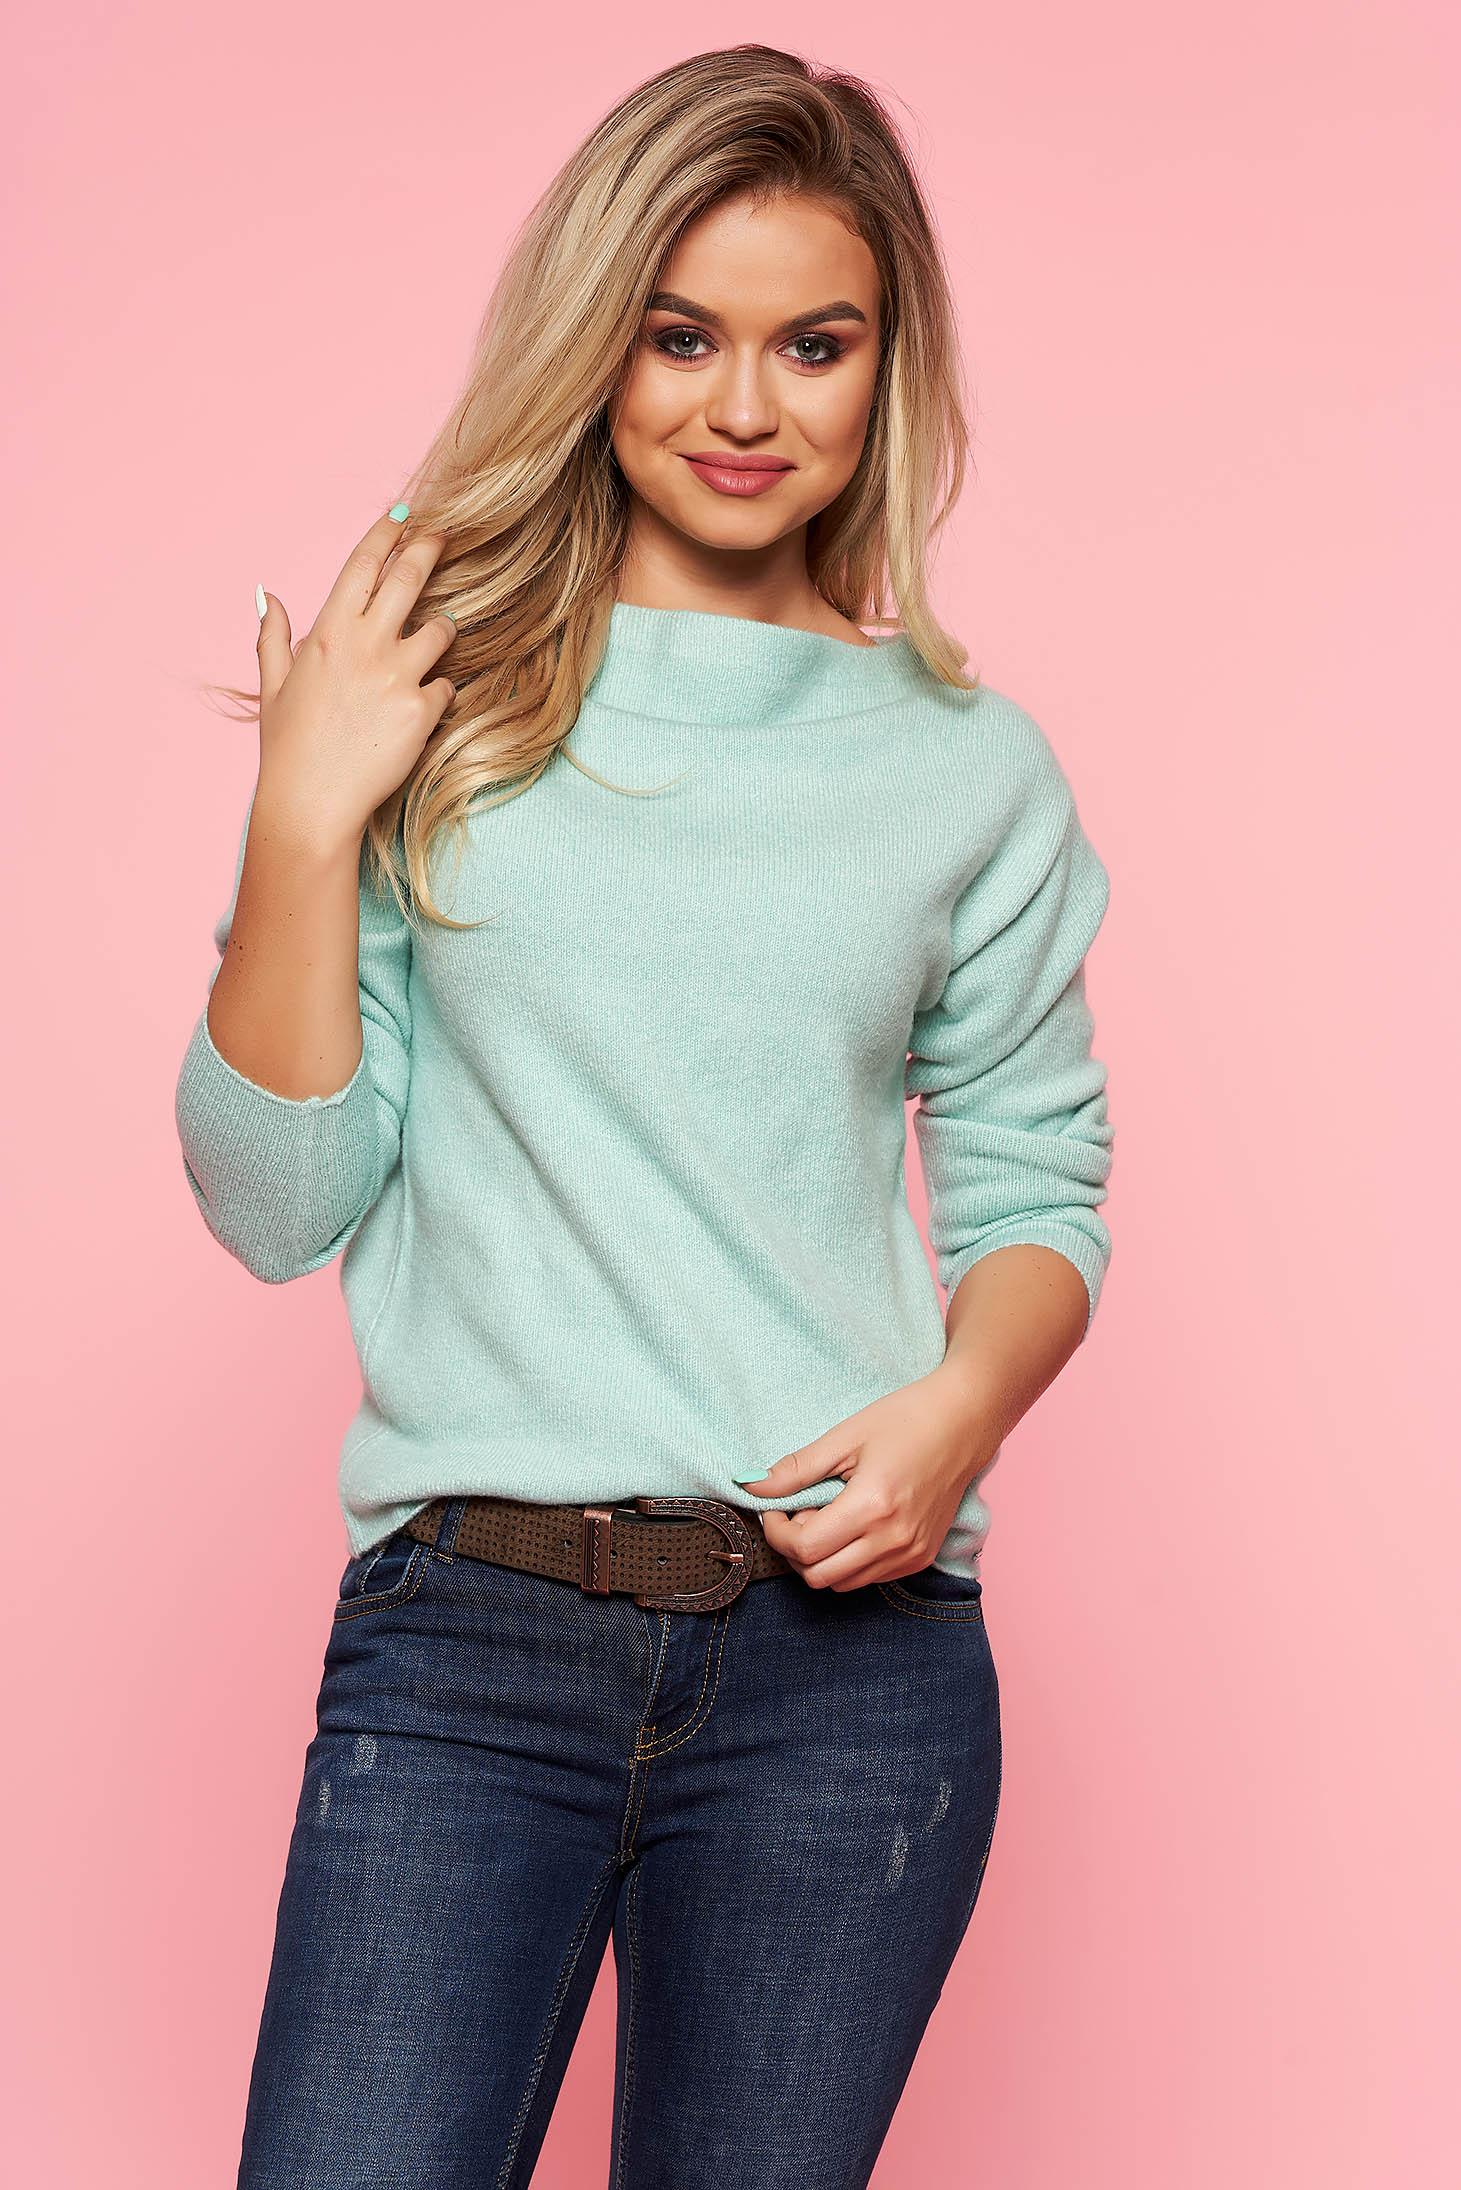 Top Secret mint casual sweater with tented cut knitted fabric long sleeved